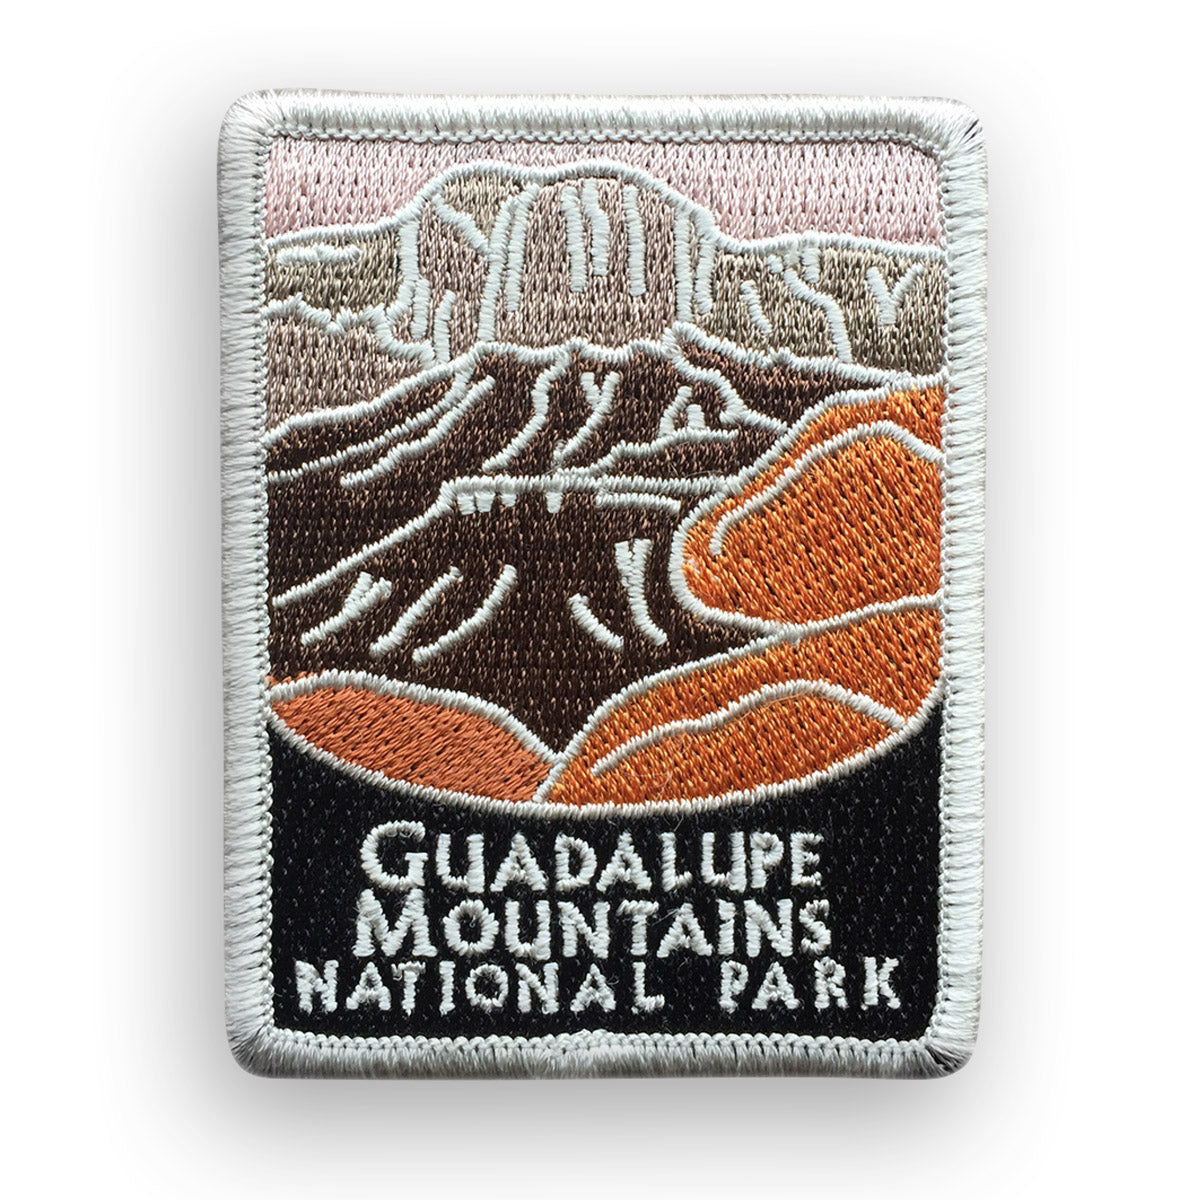 Guadalupe Mountains National Park Traveler Patch